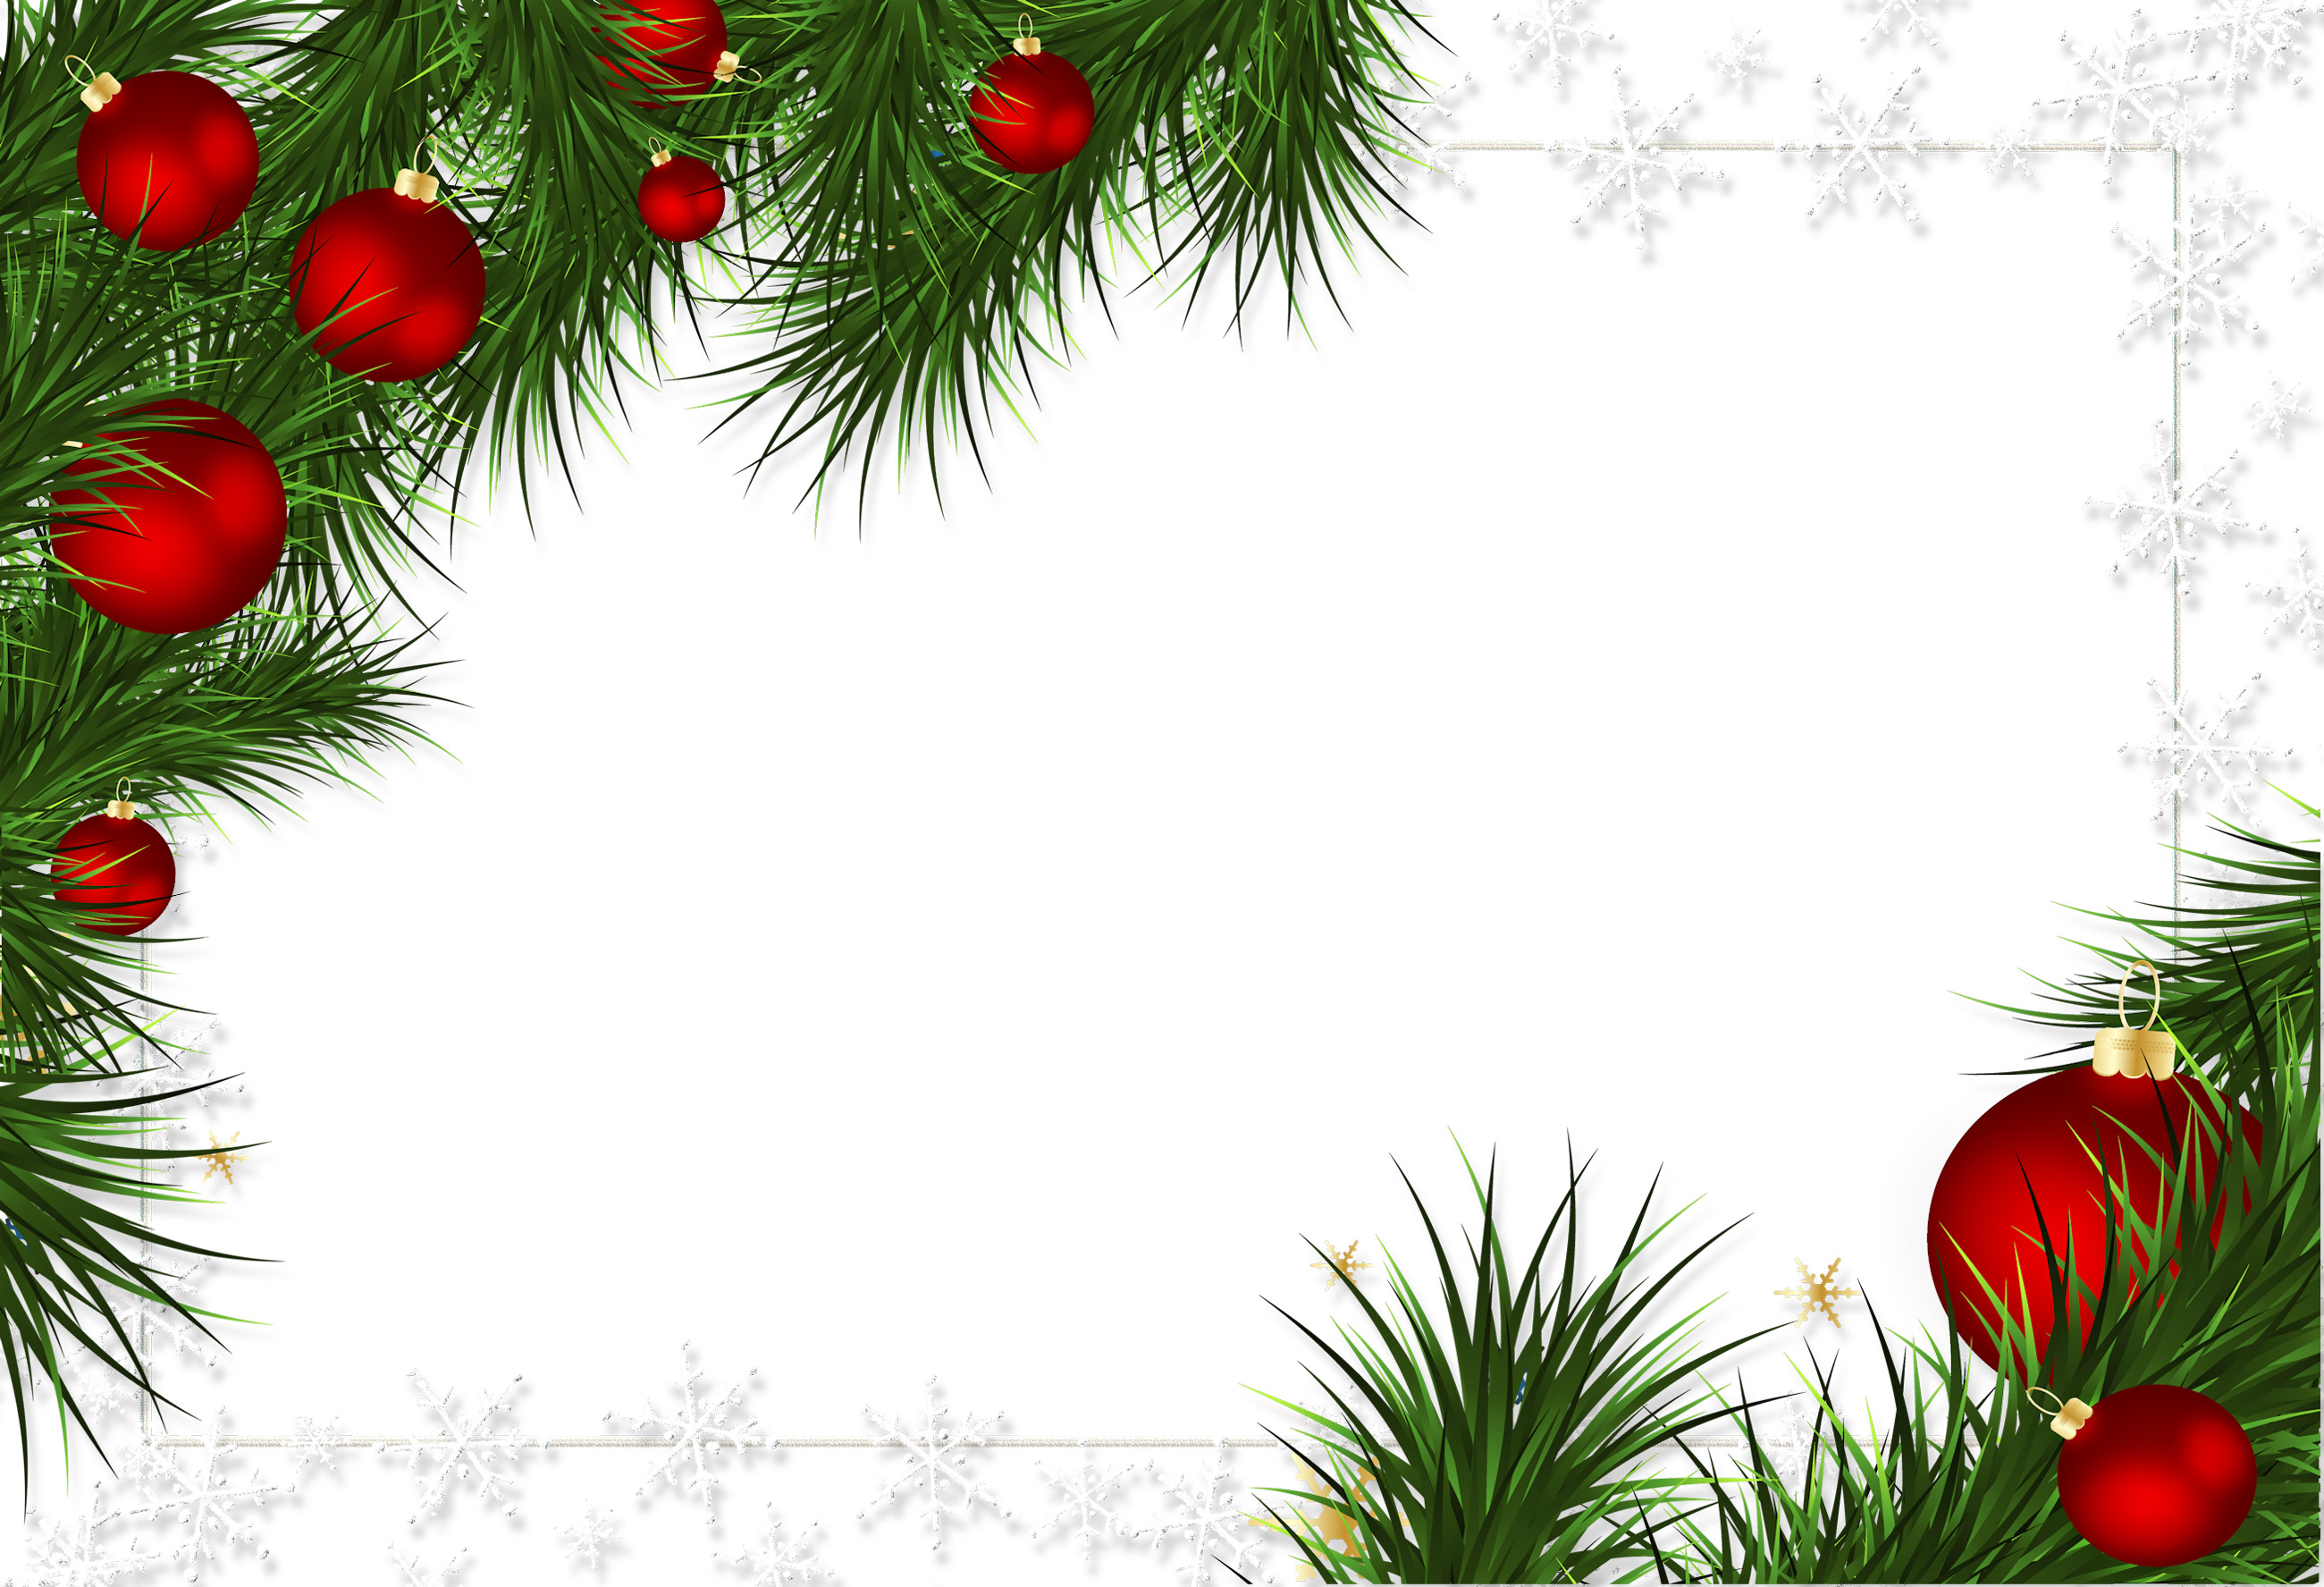 2600x1775 Merry Christmas Png Frames With Pin By Ken Mastin On Wallpaper Pinterest